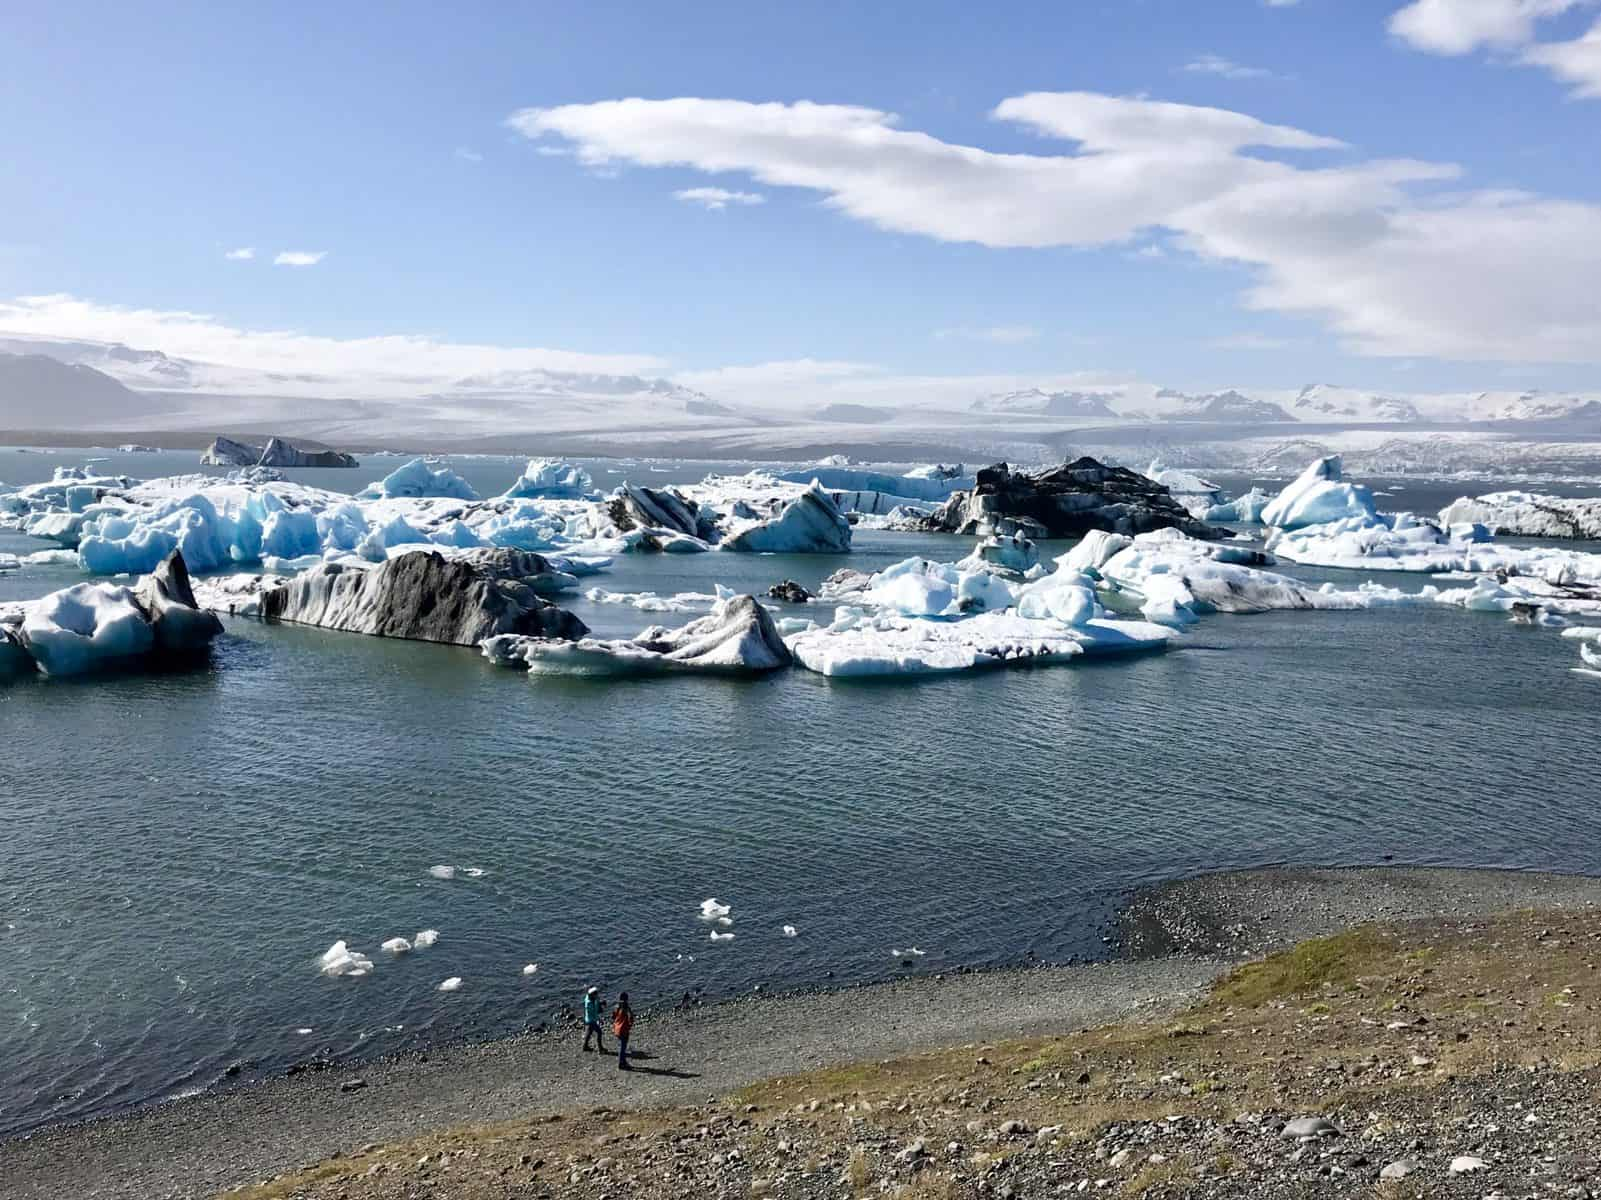 What to do in Iceland in summer - if you have 3-4 days, getting out to Jokusarlon Glacier Lagoon is a must